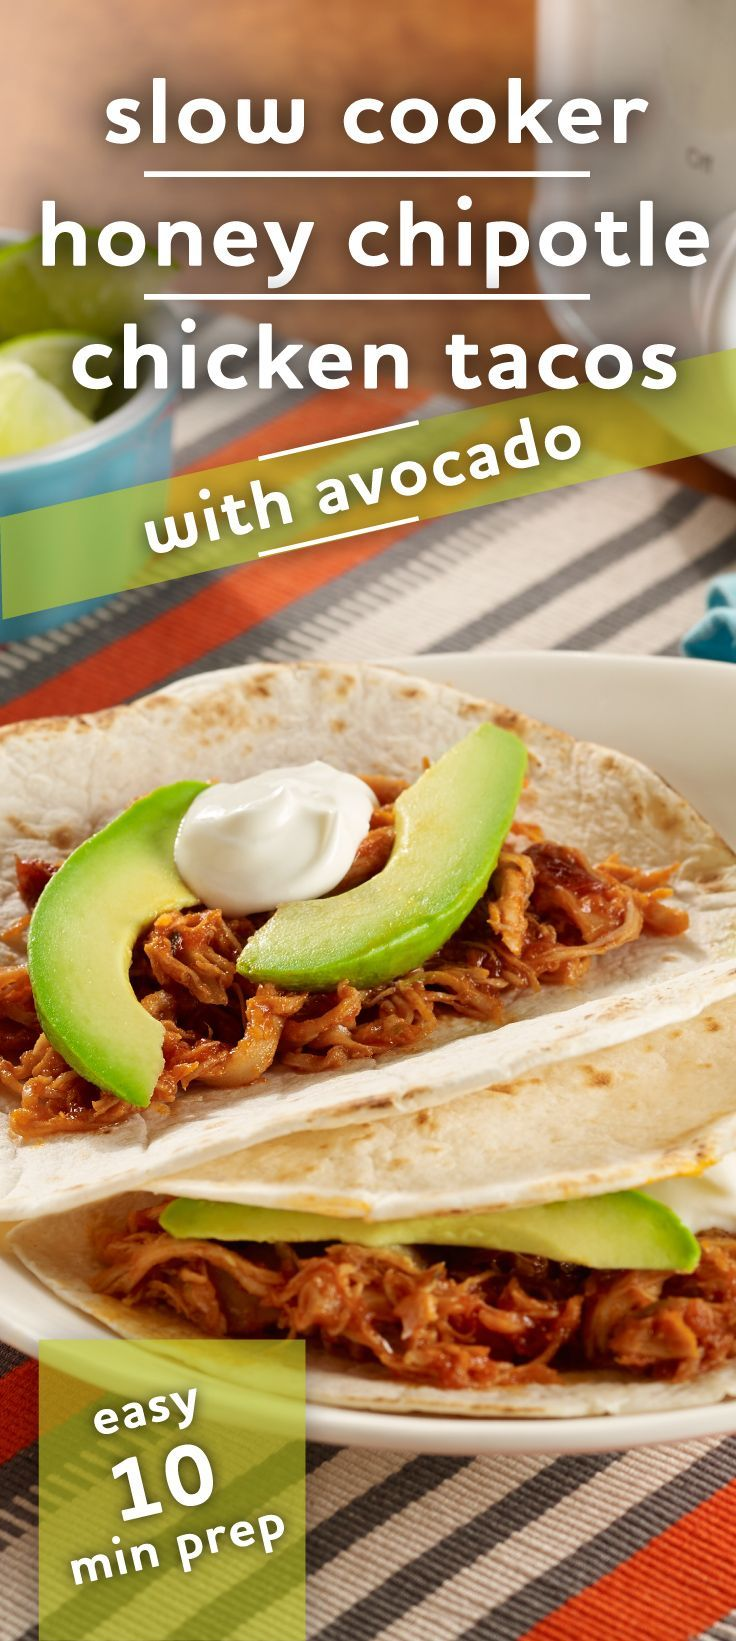 Slow Cooker Honey-Chipotle Chicken Tacos | Honey chipotle chicken ...